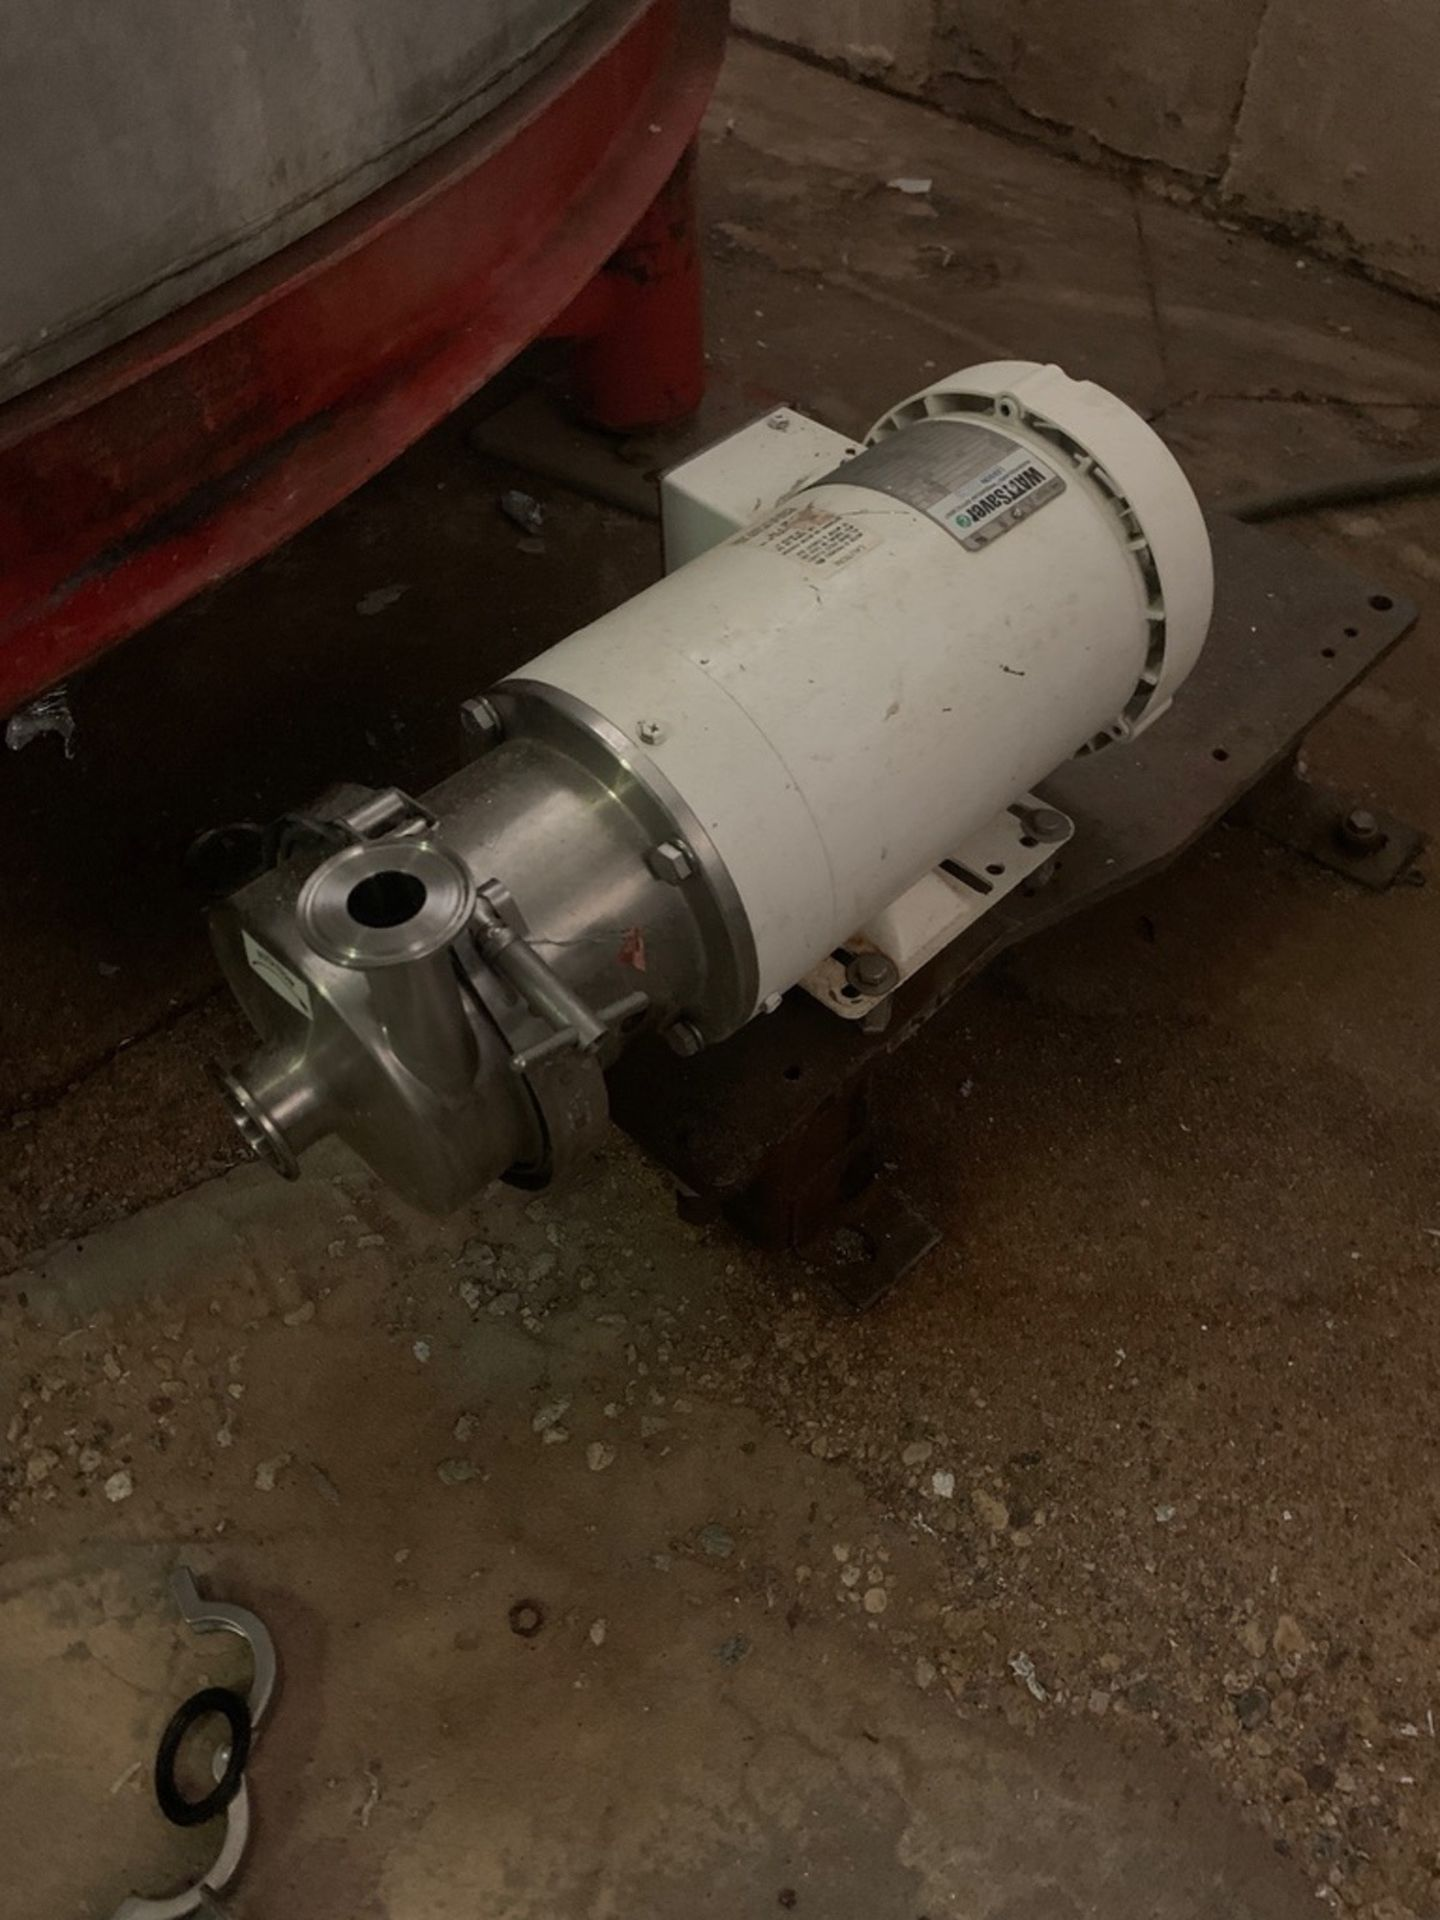 Lot 57A - Stainless Steel Centrifugal Pump, 3 HP | Rig Fee: $75